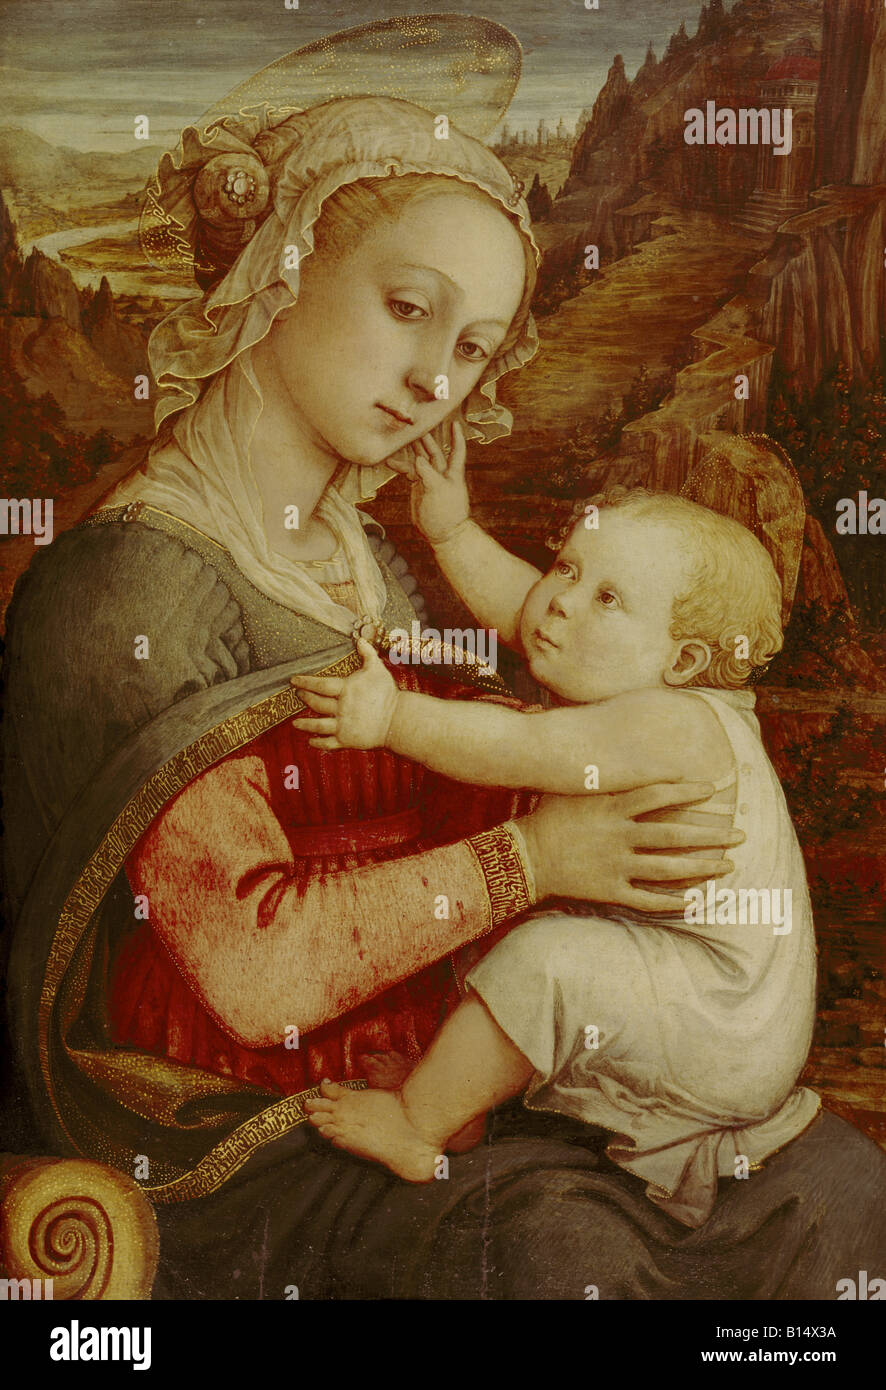 fine arts, Lippi, Fra Filippo, 1406 - 9.10.1469, painting, 'Saint Mary with the child', circa 1465, chestnut - Stock Image